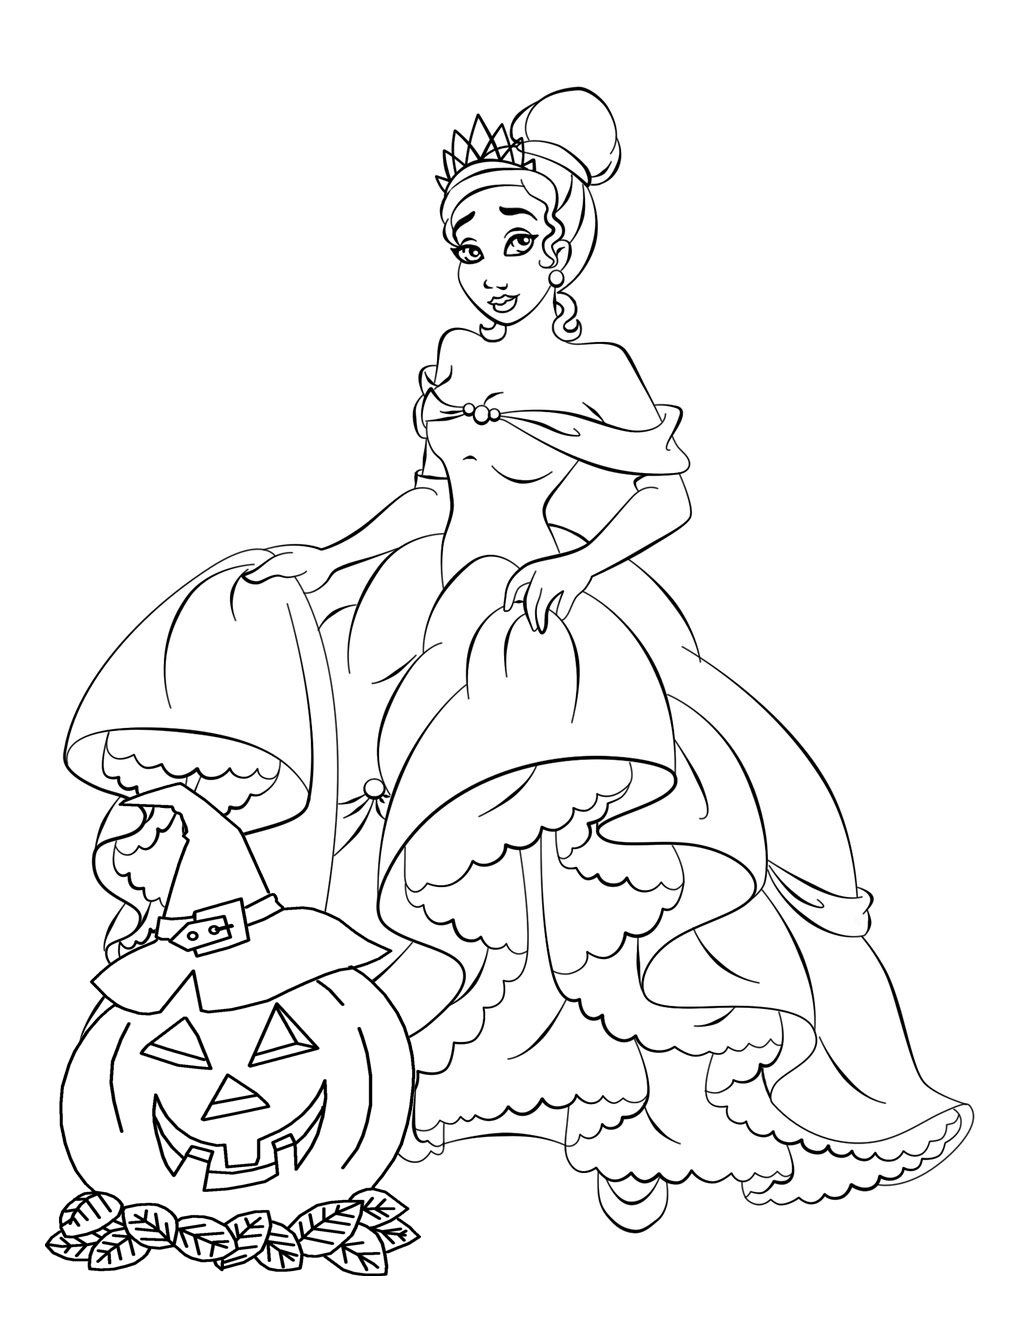 Pr princess coloring sheet - It Looks Like You Re Interested In Our Coloring Online Disney We Also Offer Many Different Princess Coloring Pages On Our Site So Check Us Out Now And Get